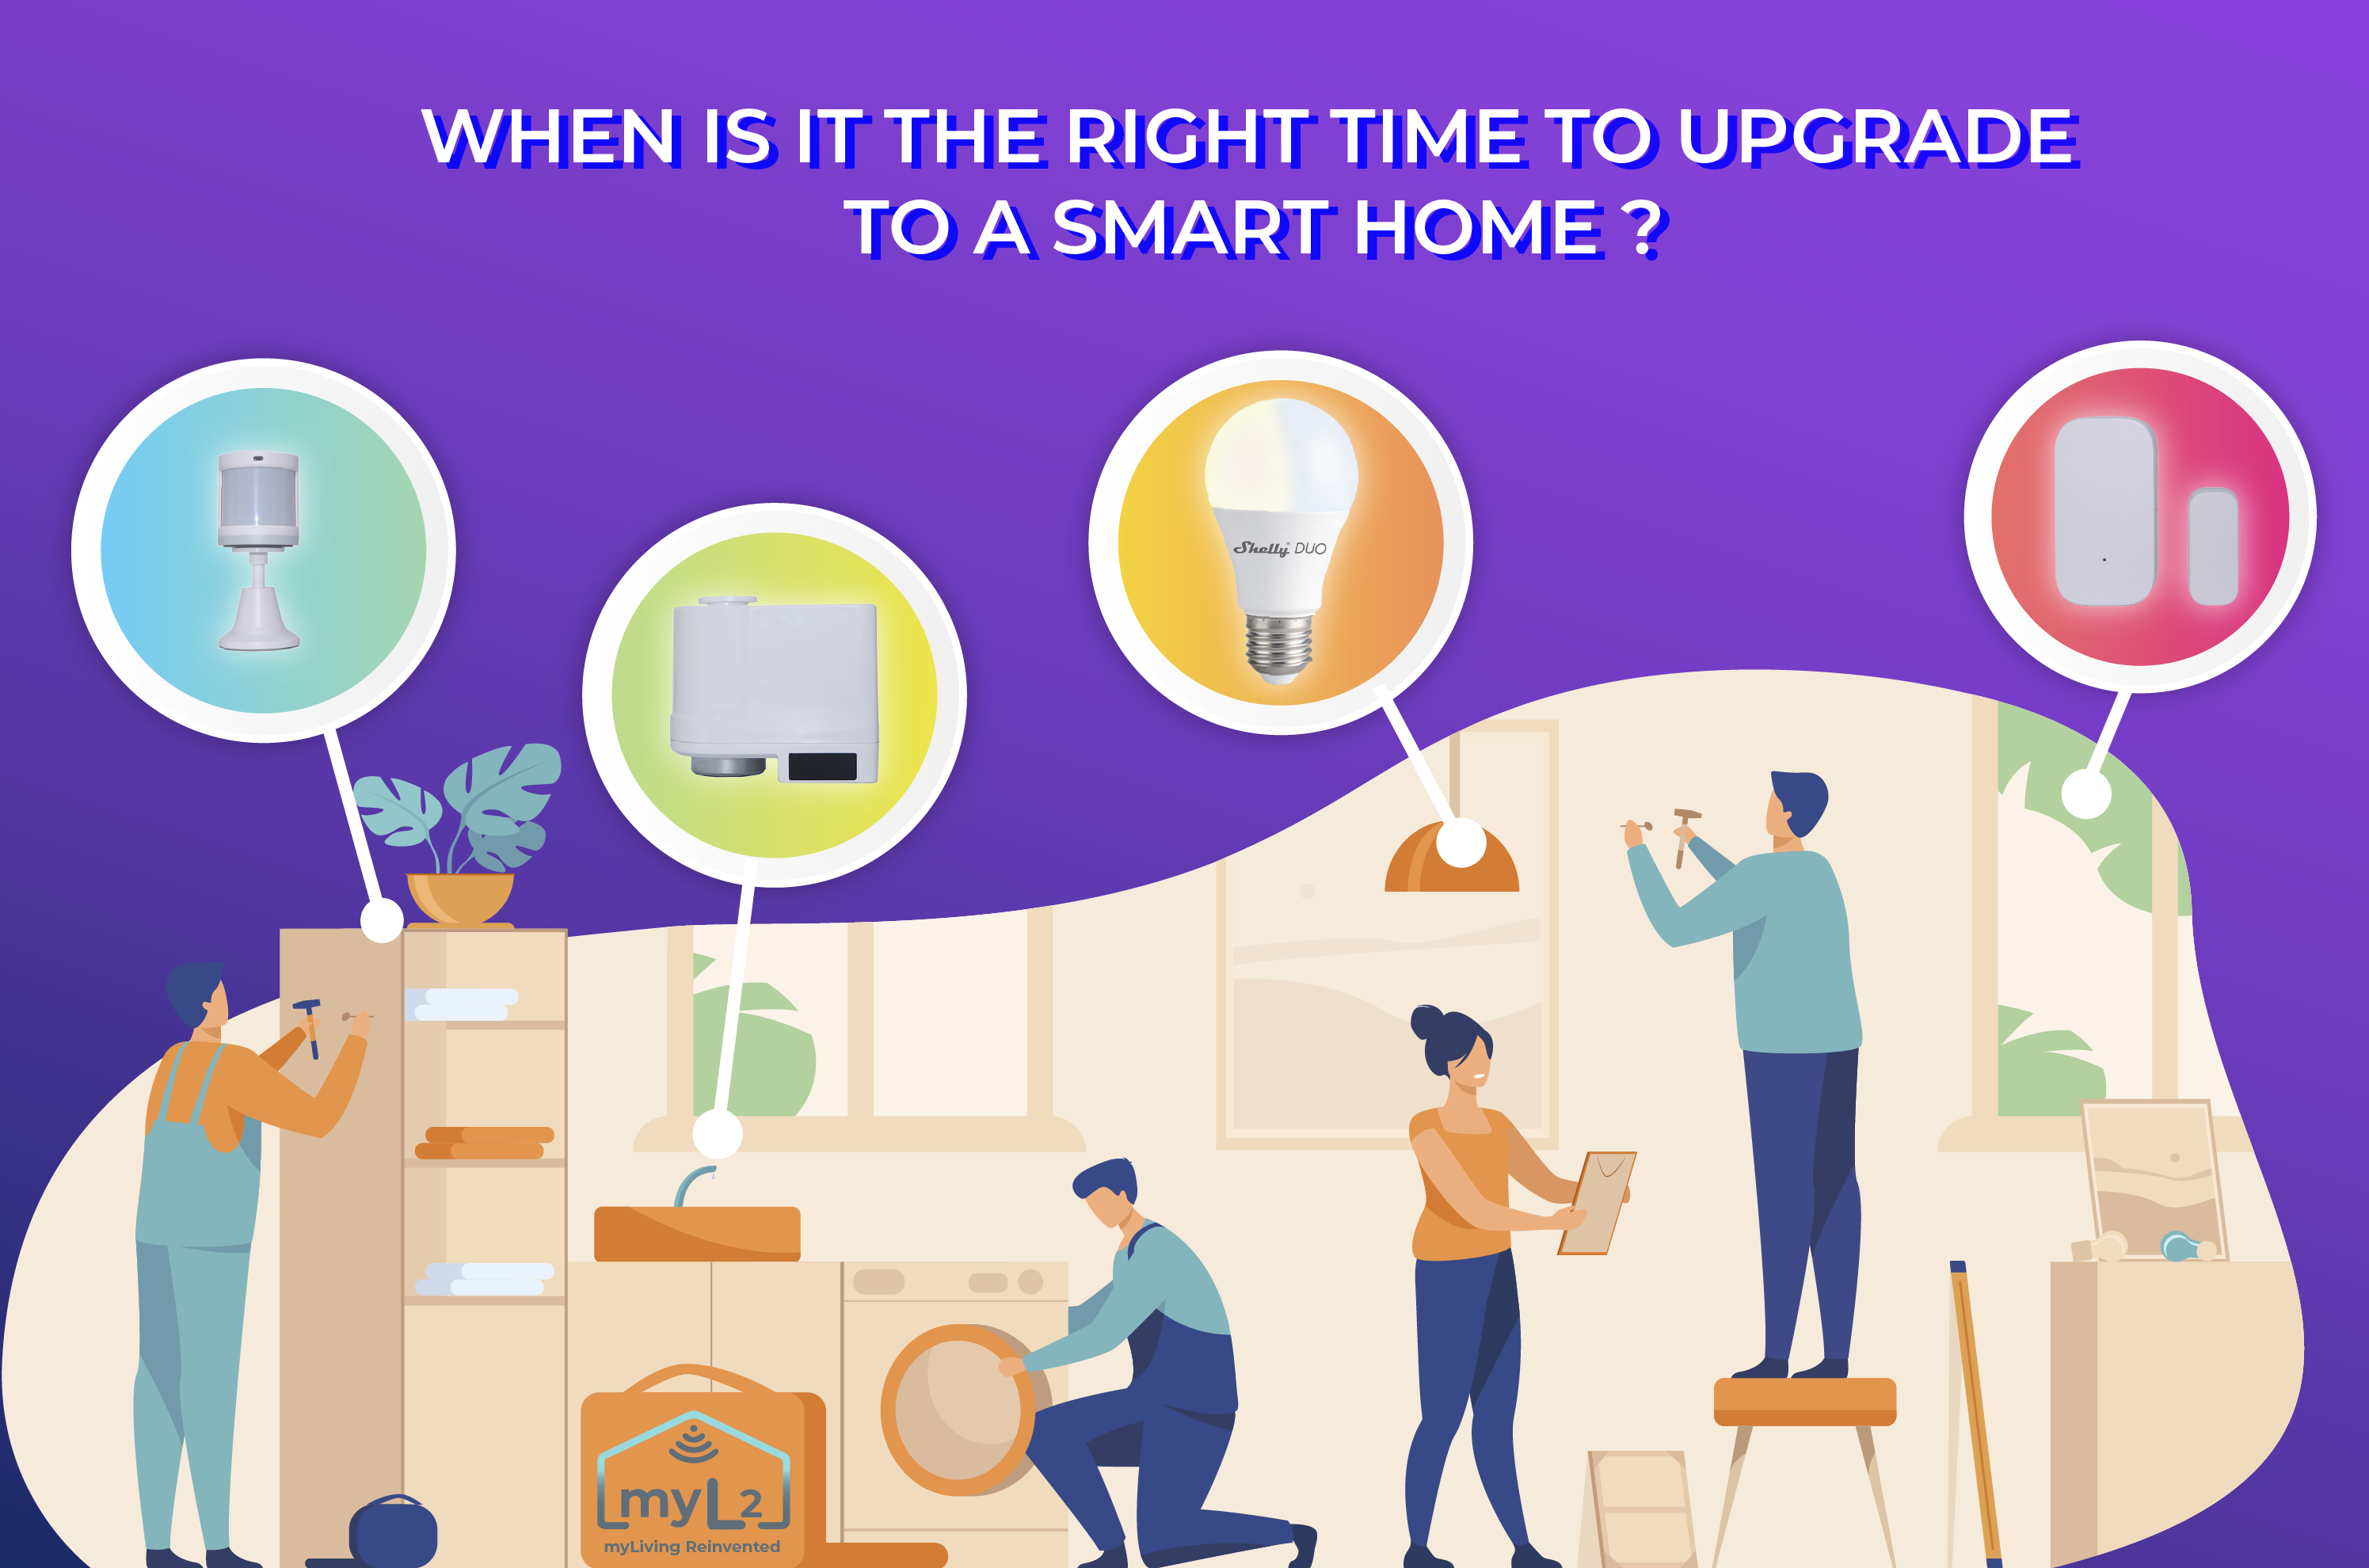 when it is the right time to upgrade to a smart home